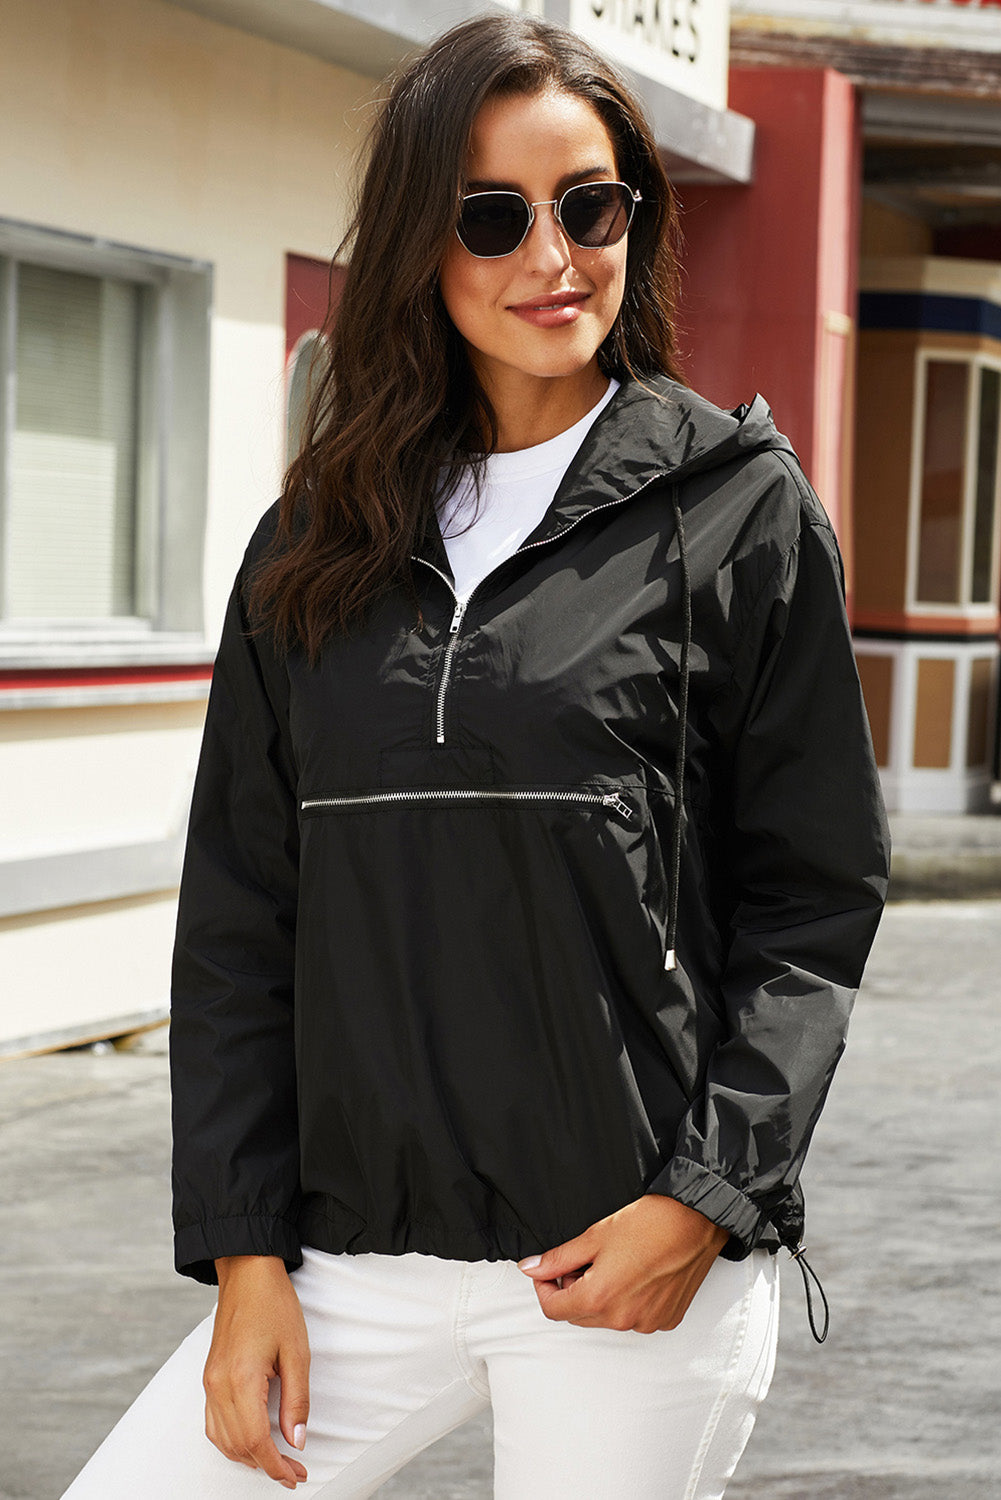 Black Windbreak Jacket Sweatshirts & Hoodies Discount Designer Fashion Clothes Shoes Bags Women Men Kids Children Black Owned Business